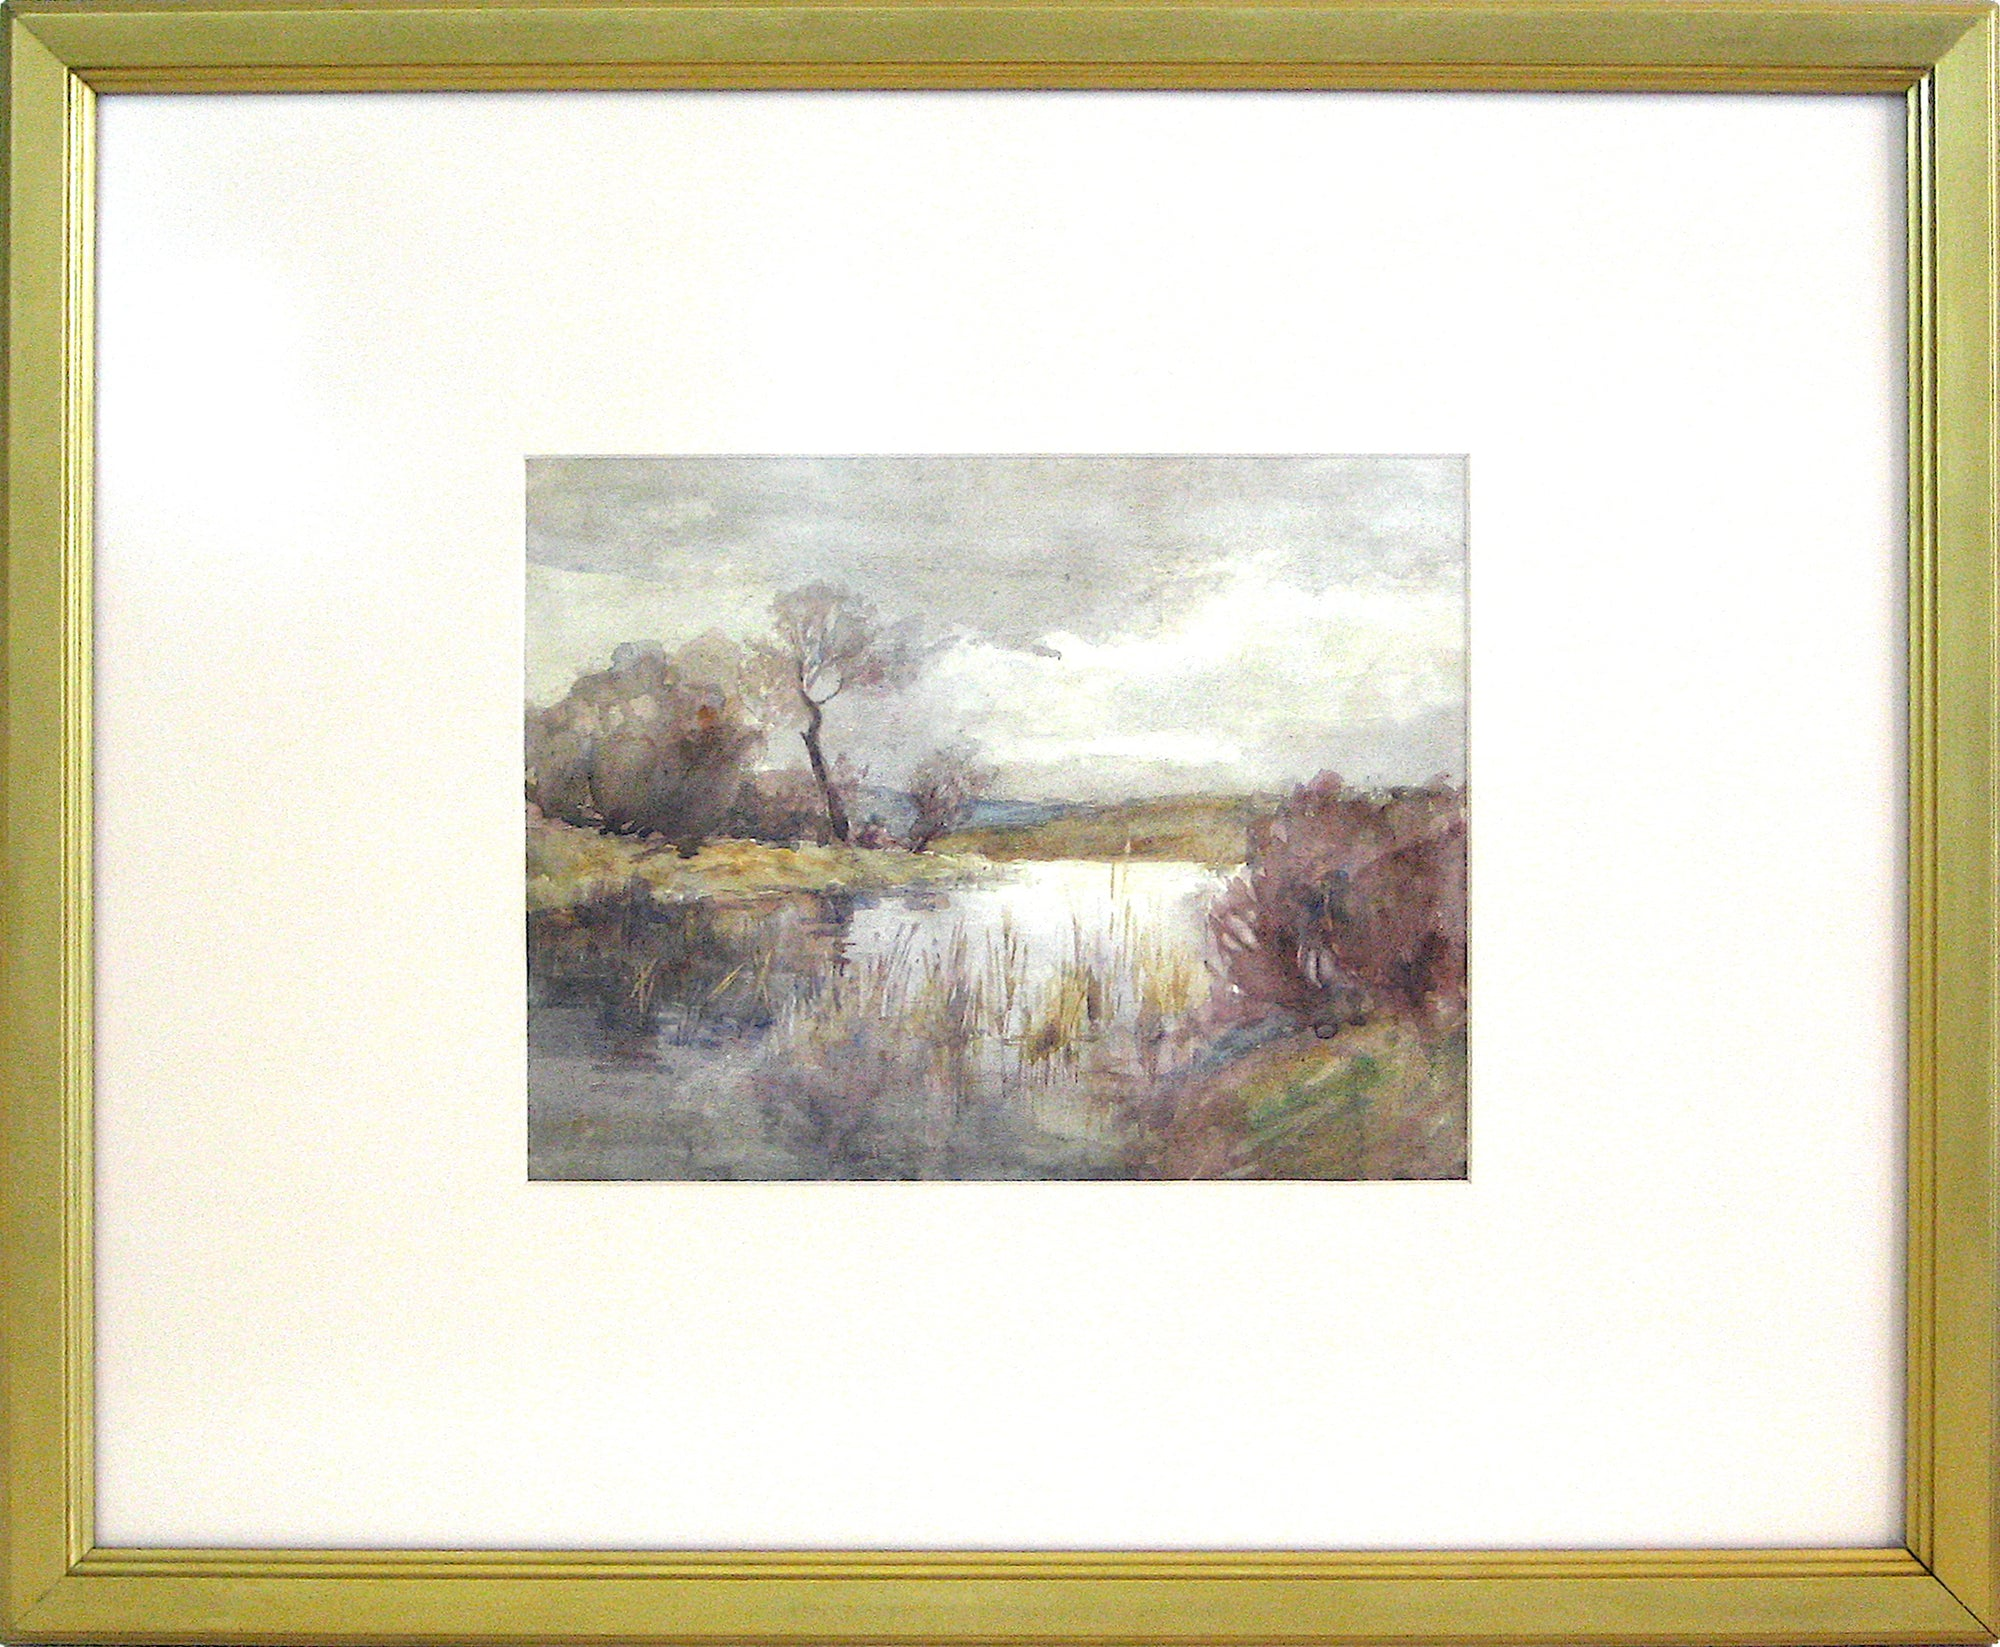 Marshes by the Lake Watercolor on Paper<br>Early-Mid 1800s<br><br>#10151